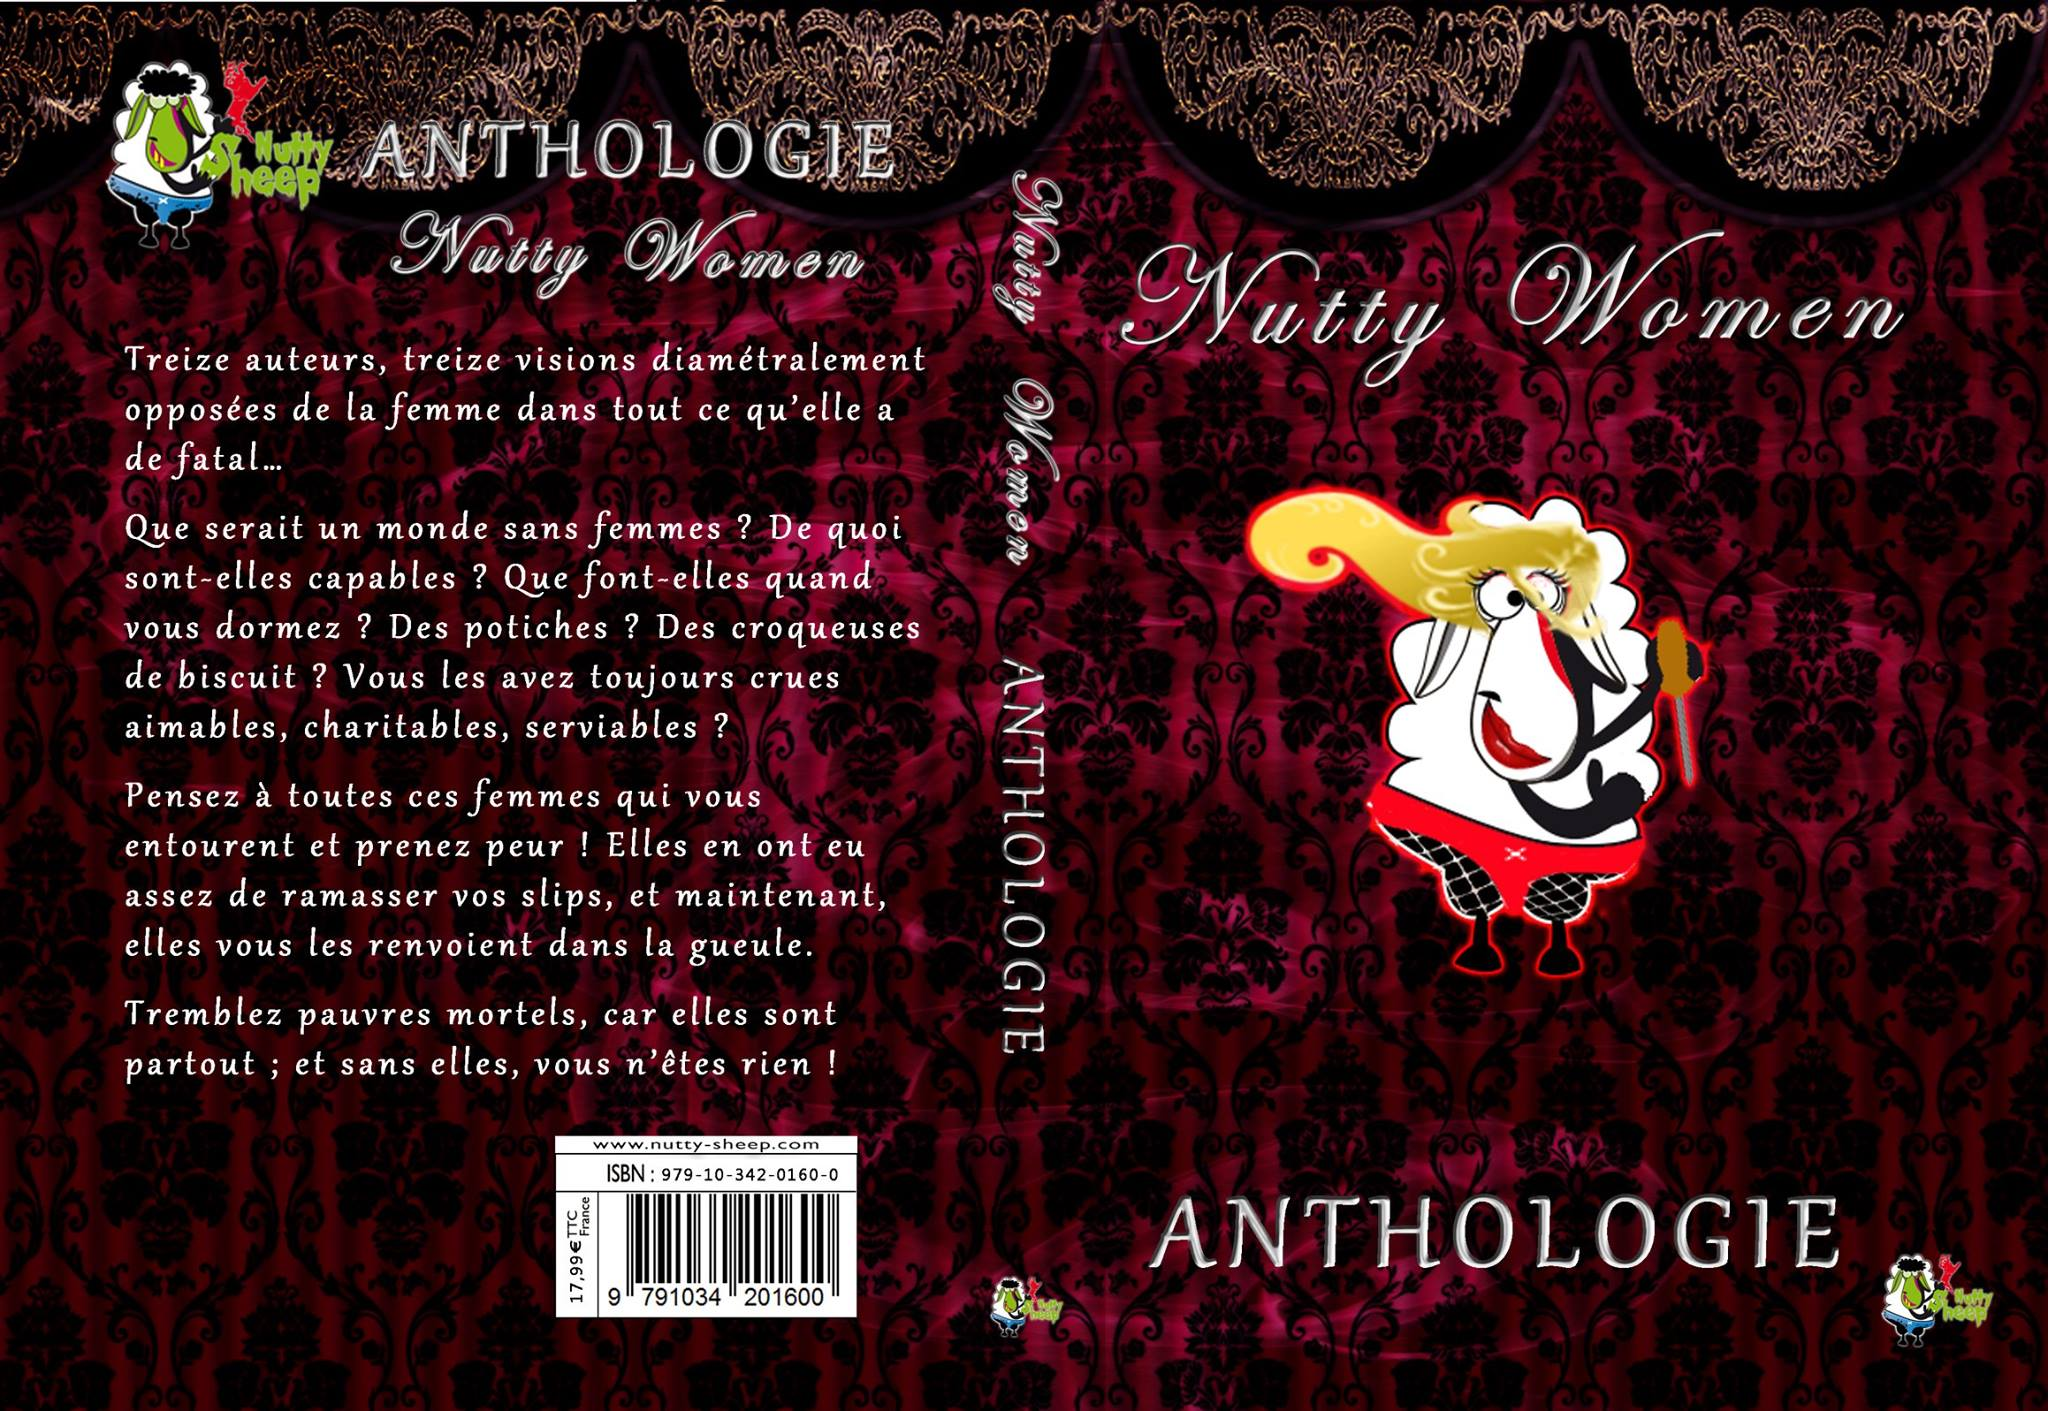 Nutty Women - Anthologie de nouvelles [Nutty Sheep] 986710201168626695873032463404796224110434684577o